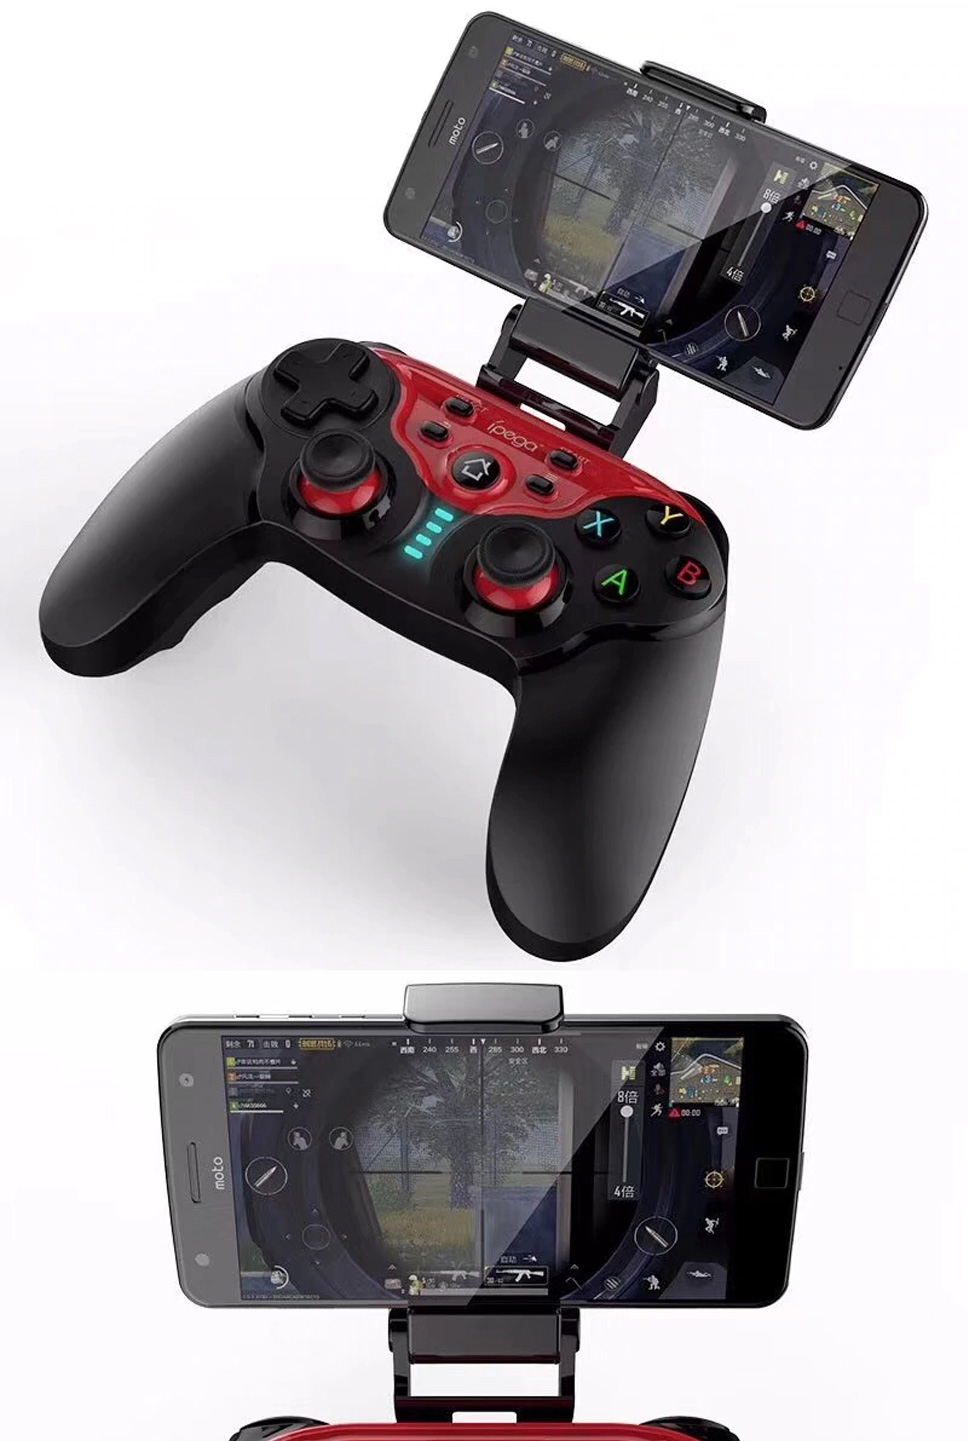 Ipega Pg 9088 Future Soldier Bluetooth Wireless Gamepad Gaming Mobile Controller 30 For Android And Ios 9021 Black Standby Time Days